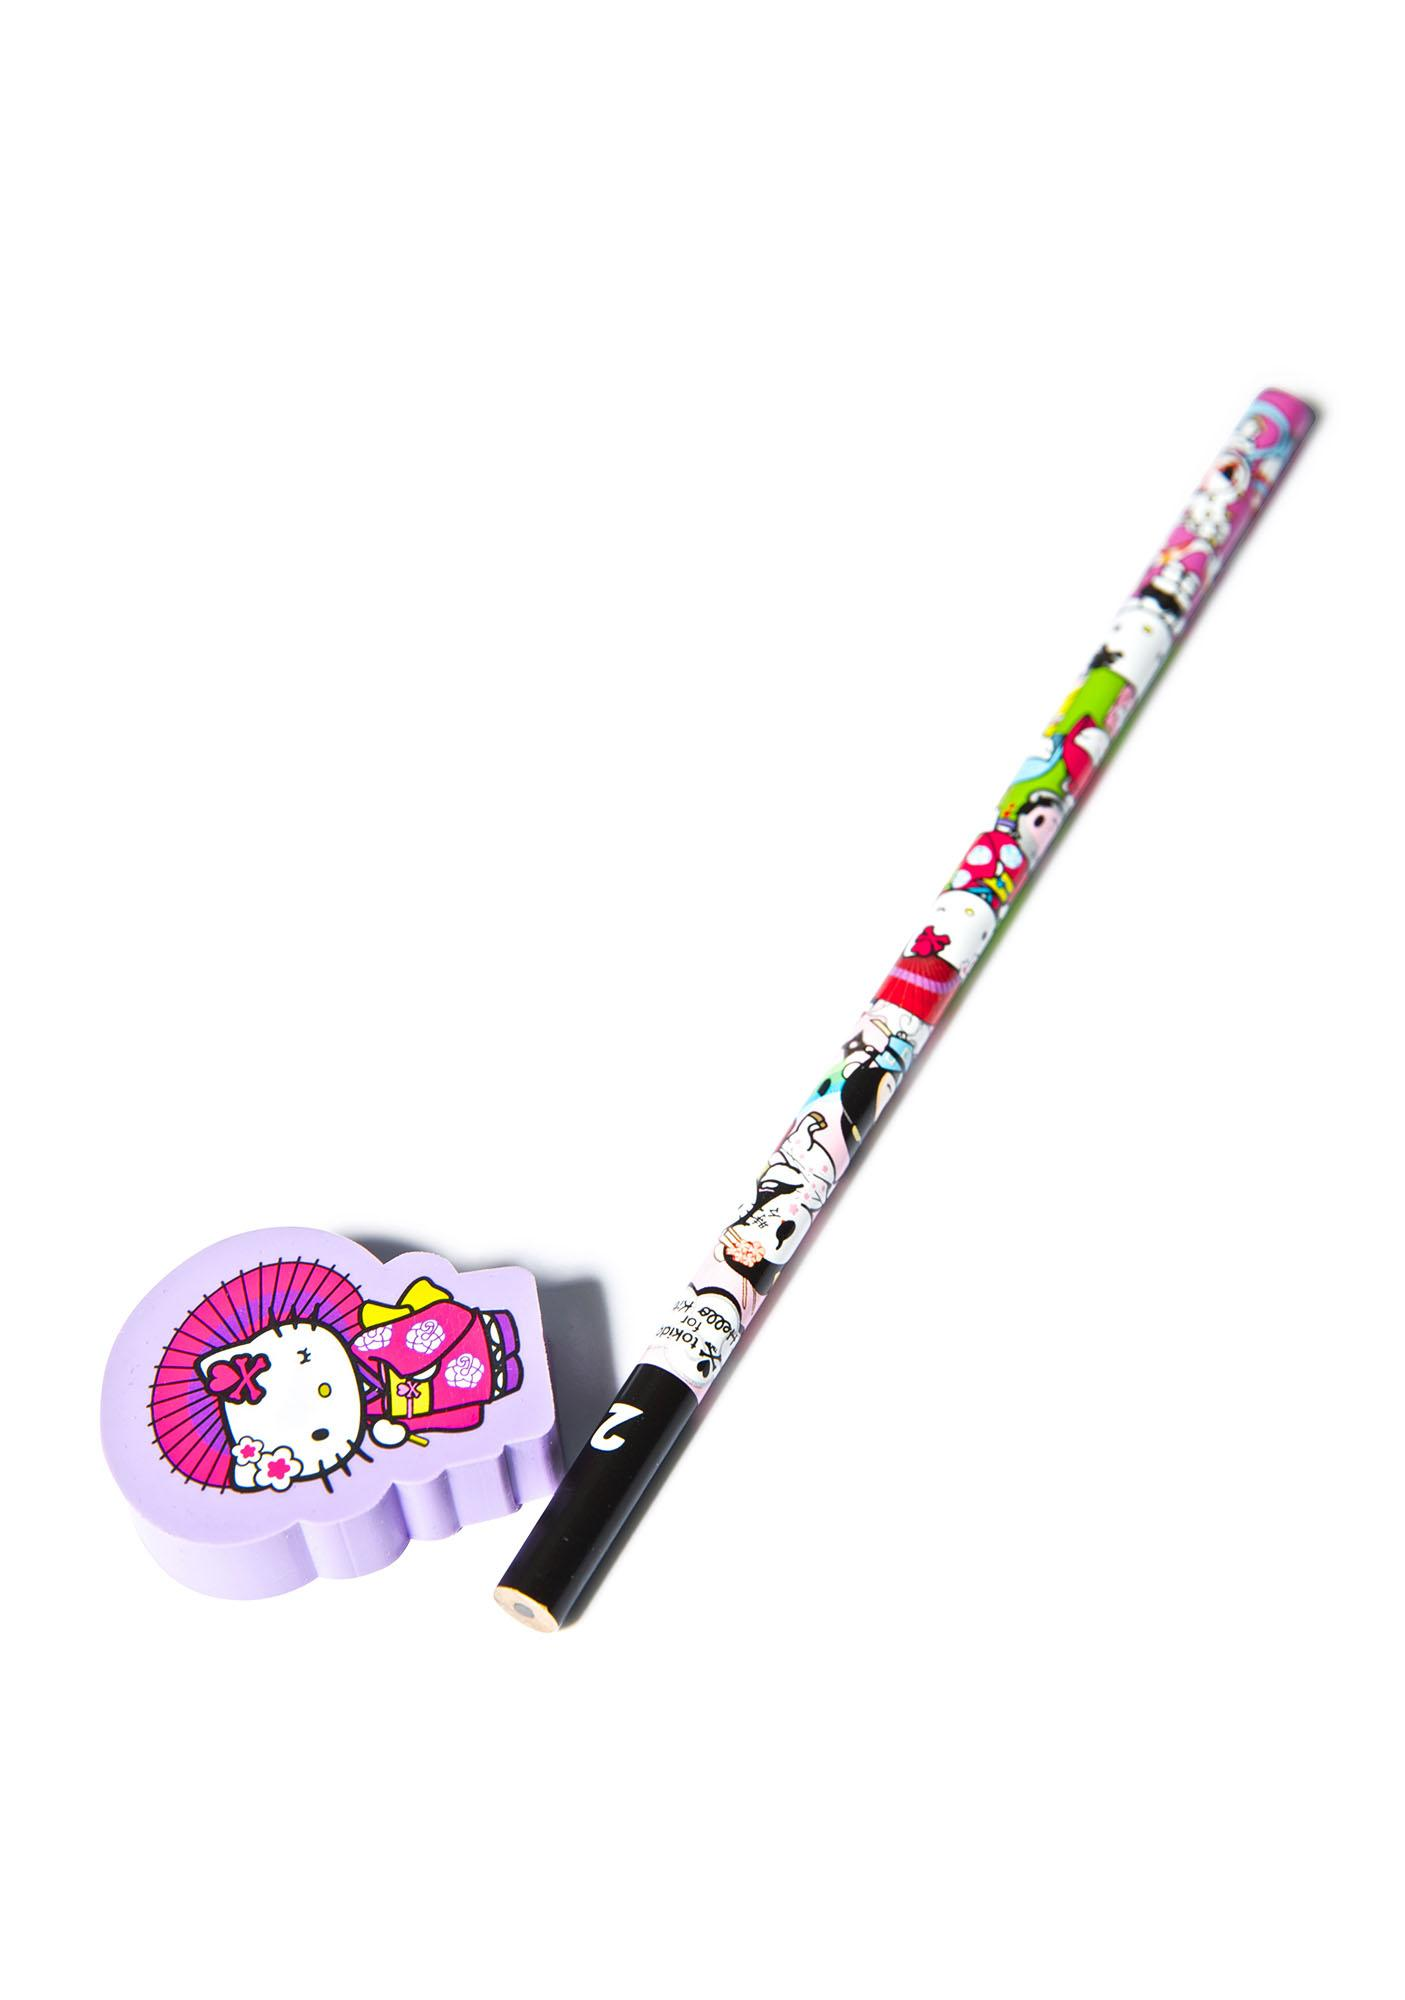 Tokidoki x Hello Kitty Geisha Pencil